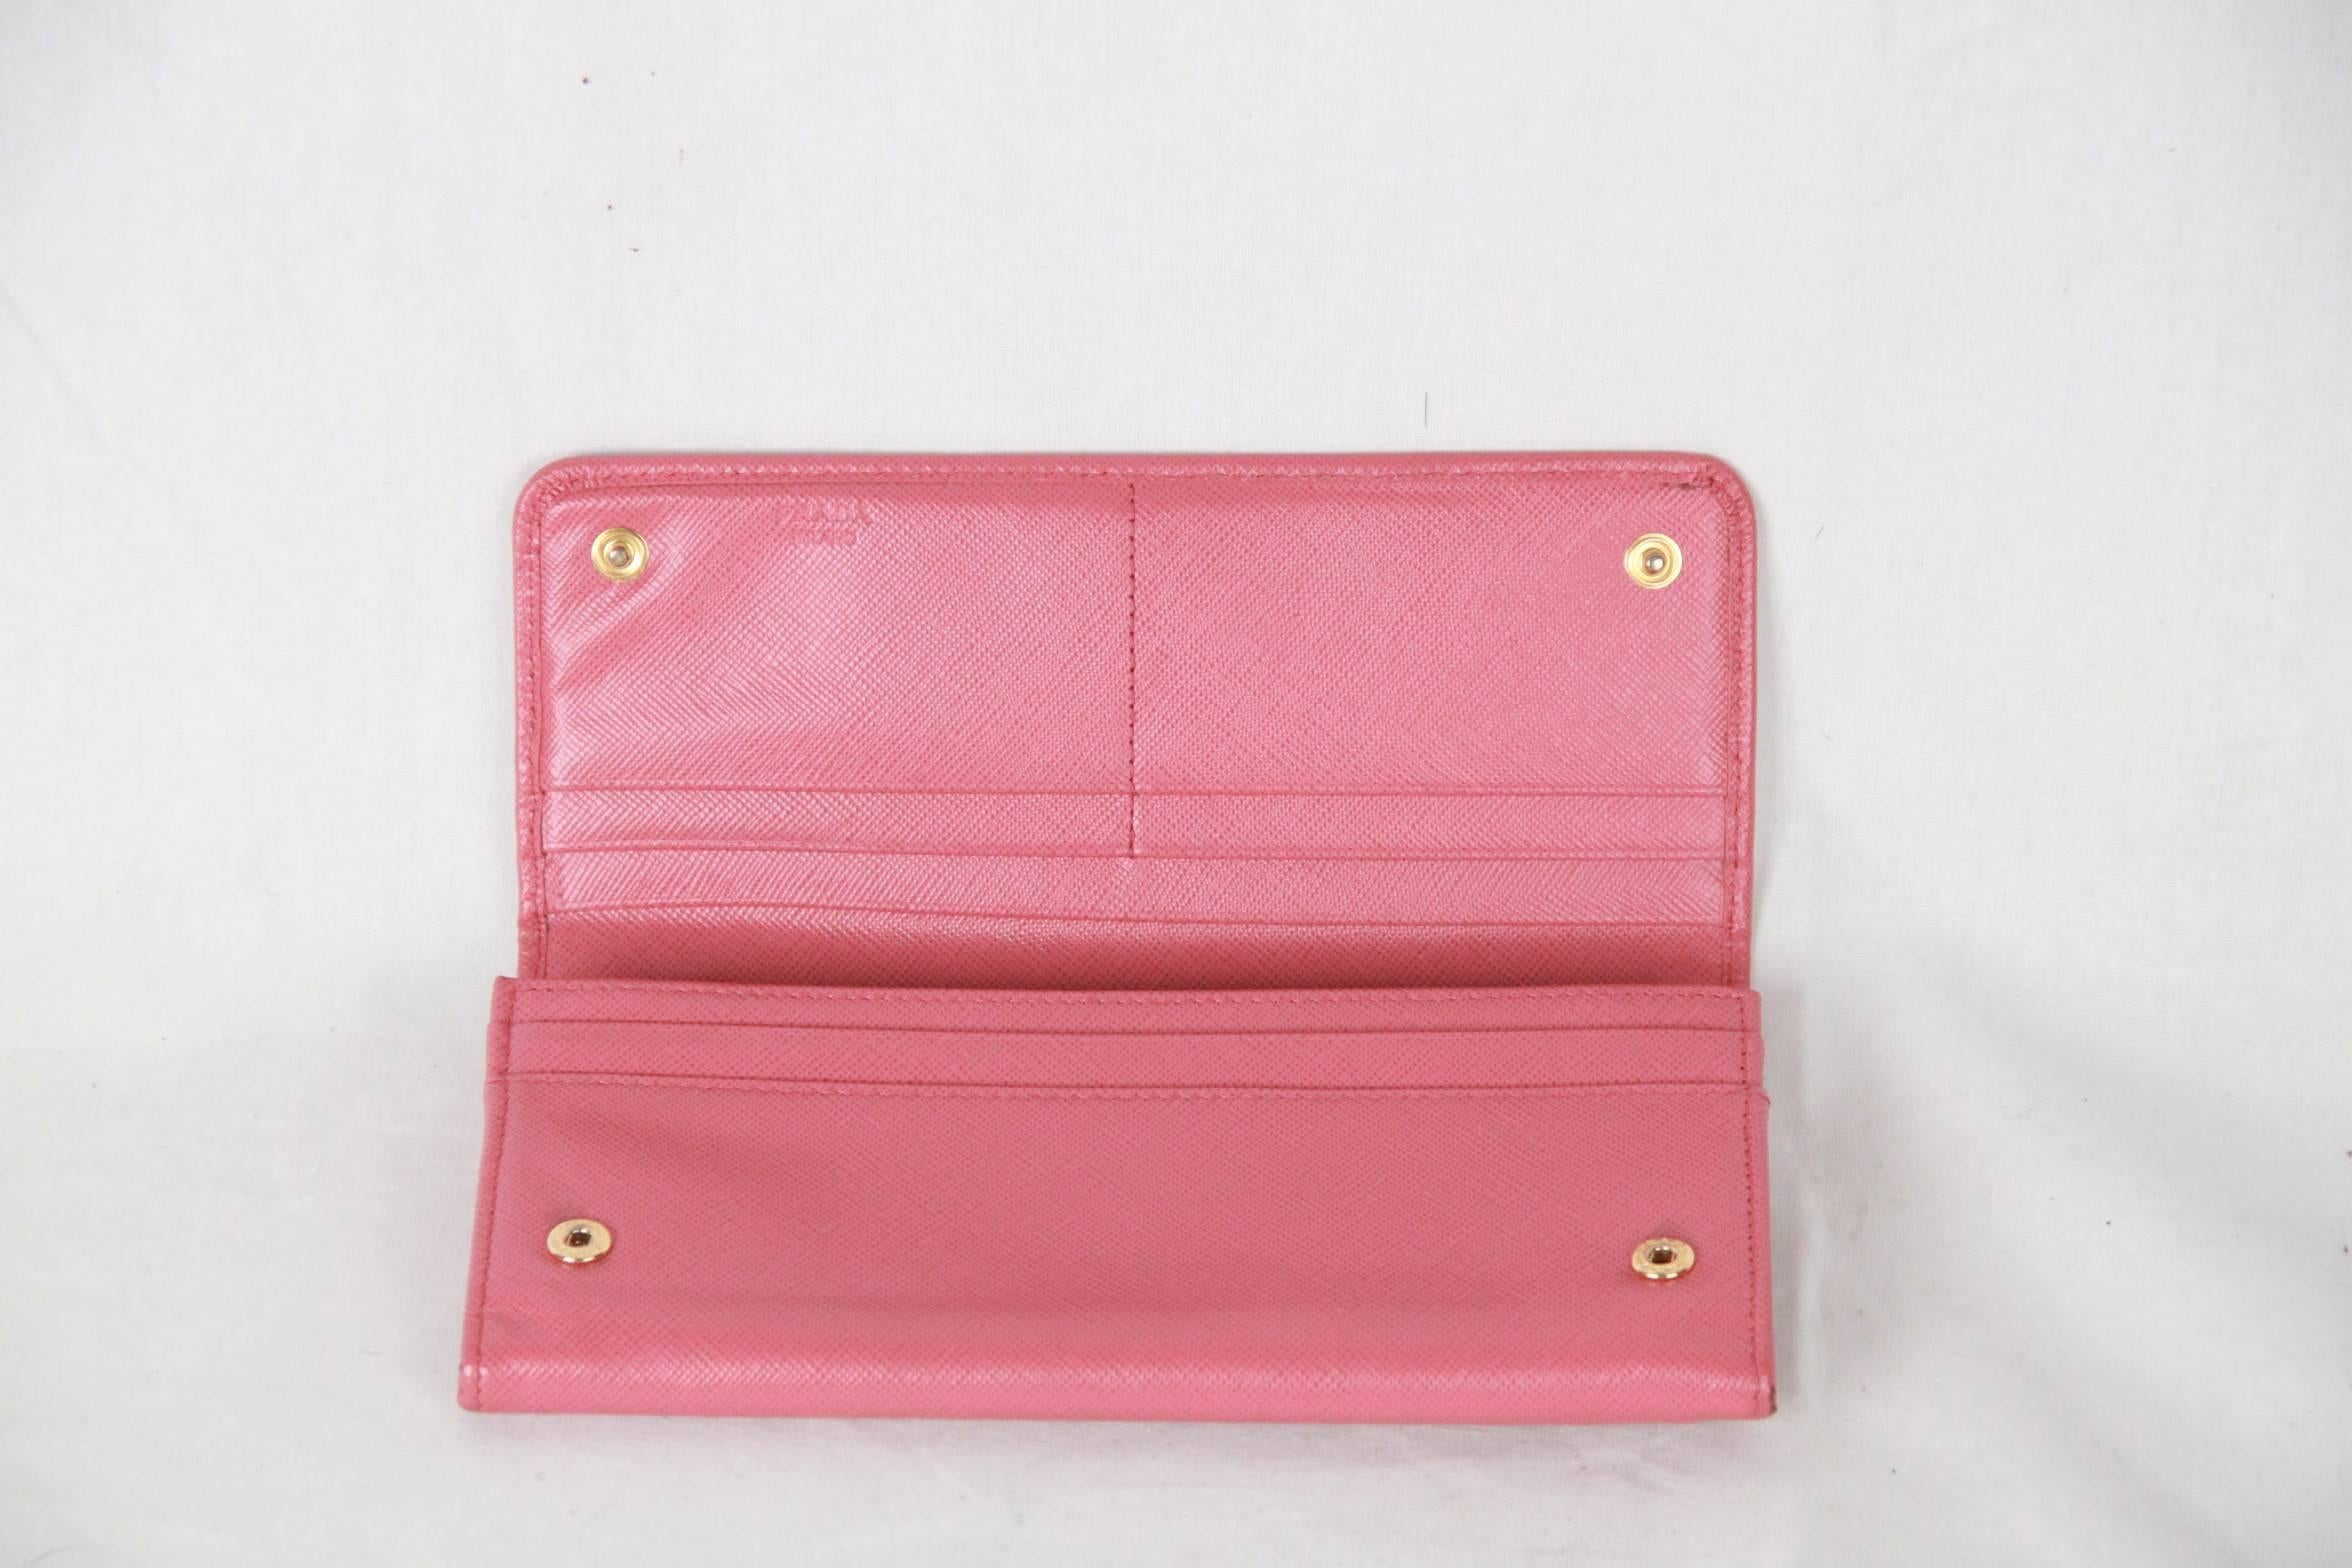 0955cf30d4ab PRADA Pink SAFFIANO Leather FLAP CONTINENTAL WALLET 1M1132 For Sale at  1stdibs